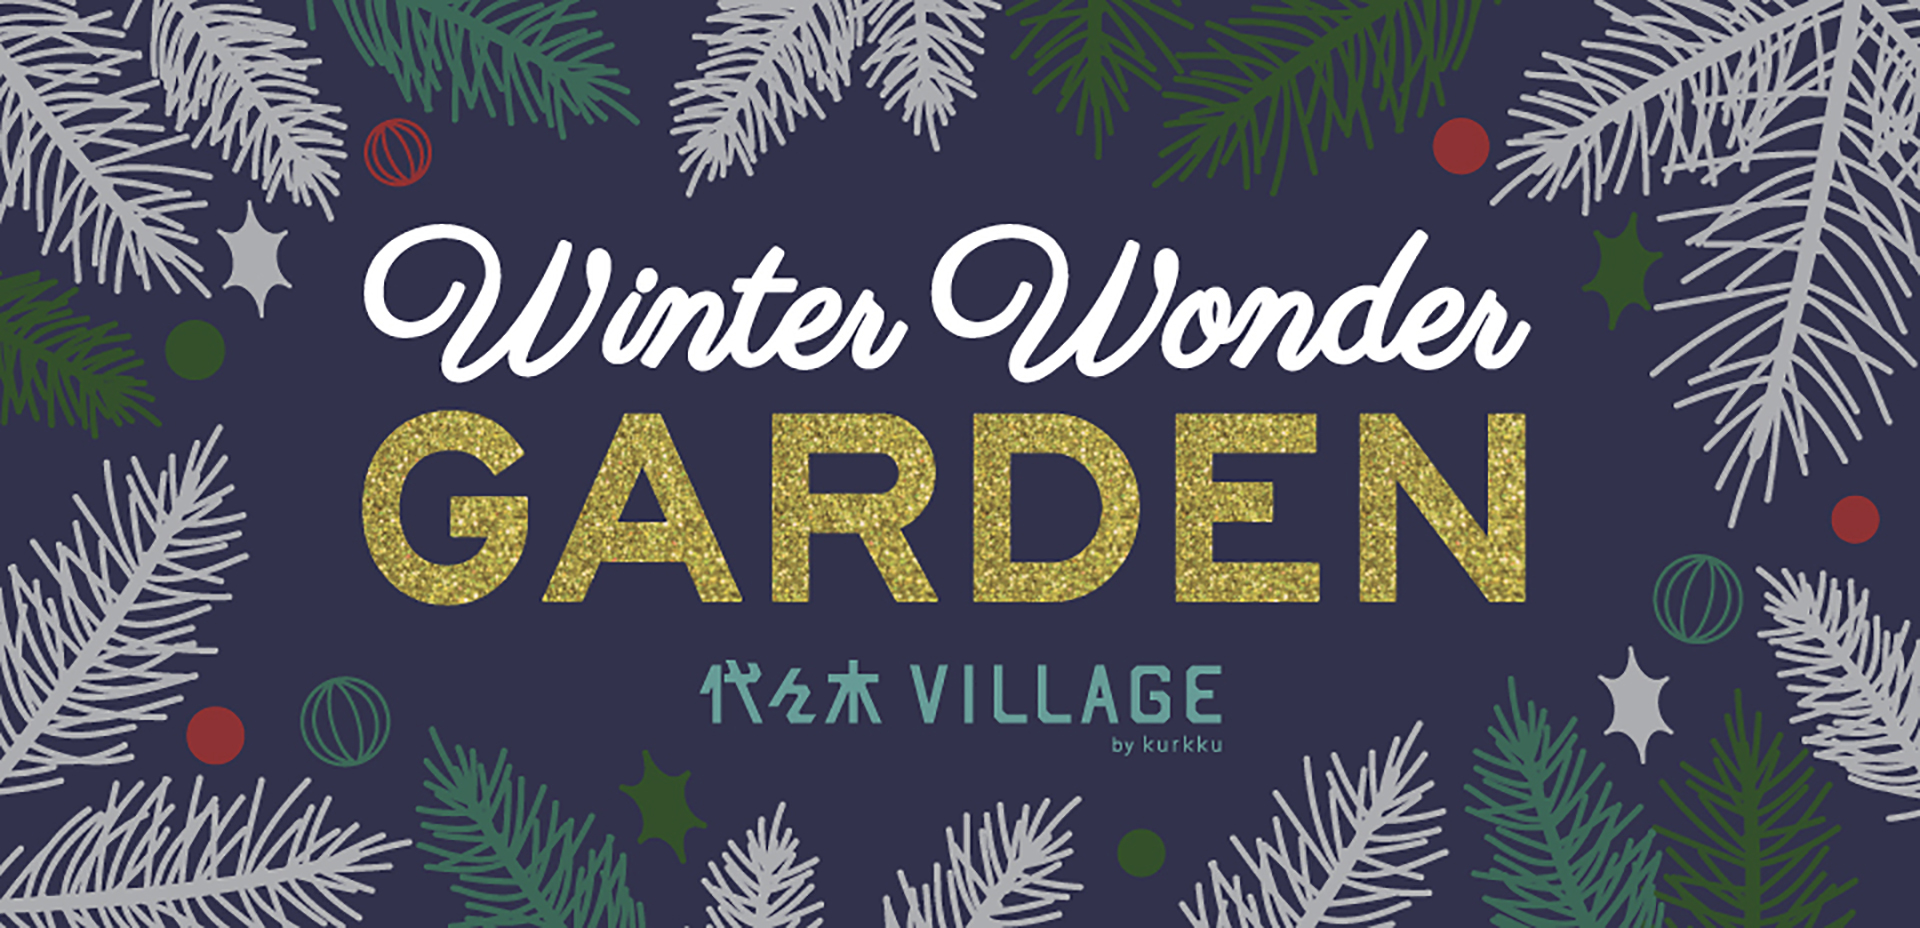 WINTER WONDER GARDEN 2019-2020バナー